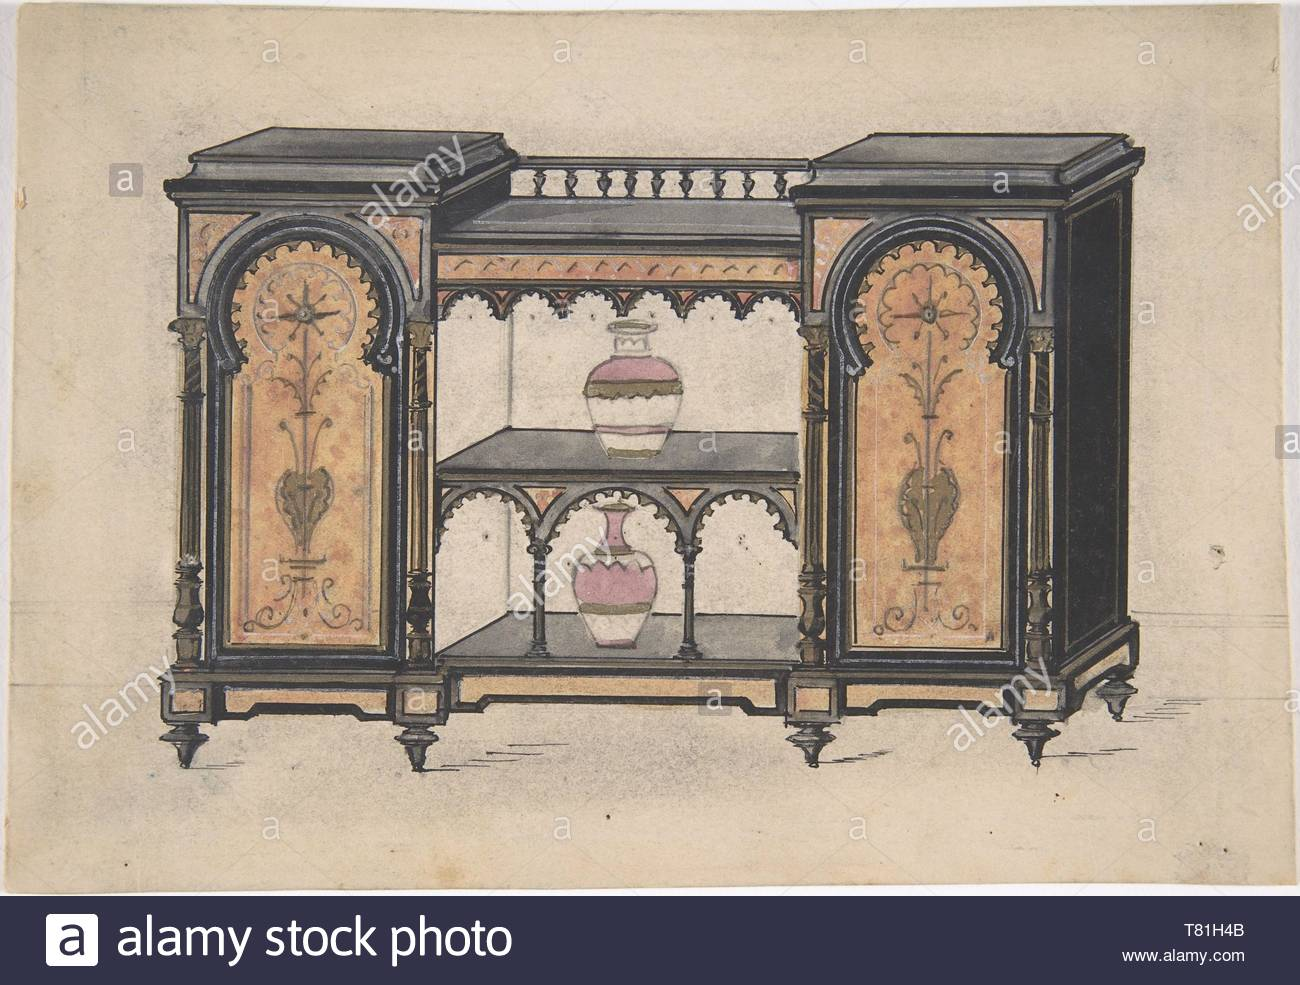 Anonymous, British, 19th century-Design for a Cabinet with Two Central Shelves and Arched Doors - Stock Image